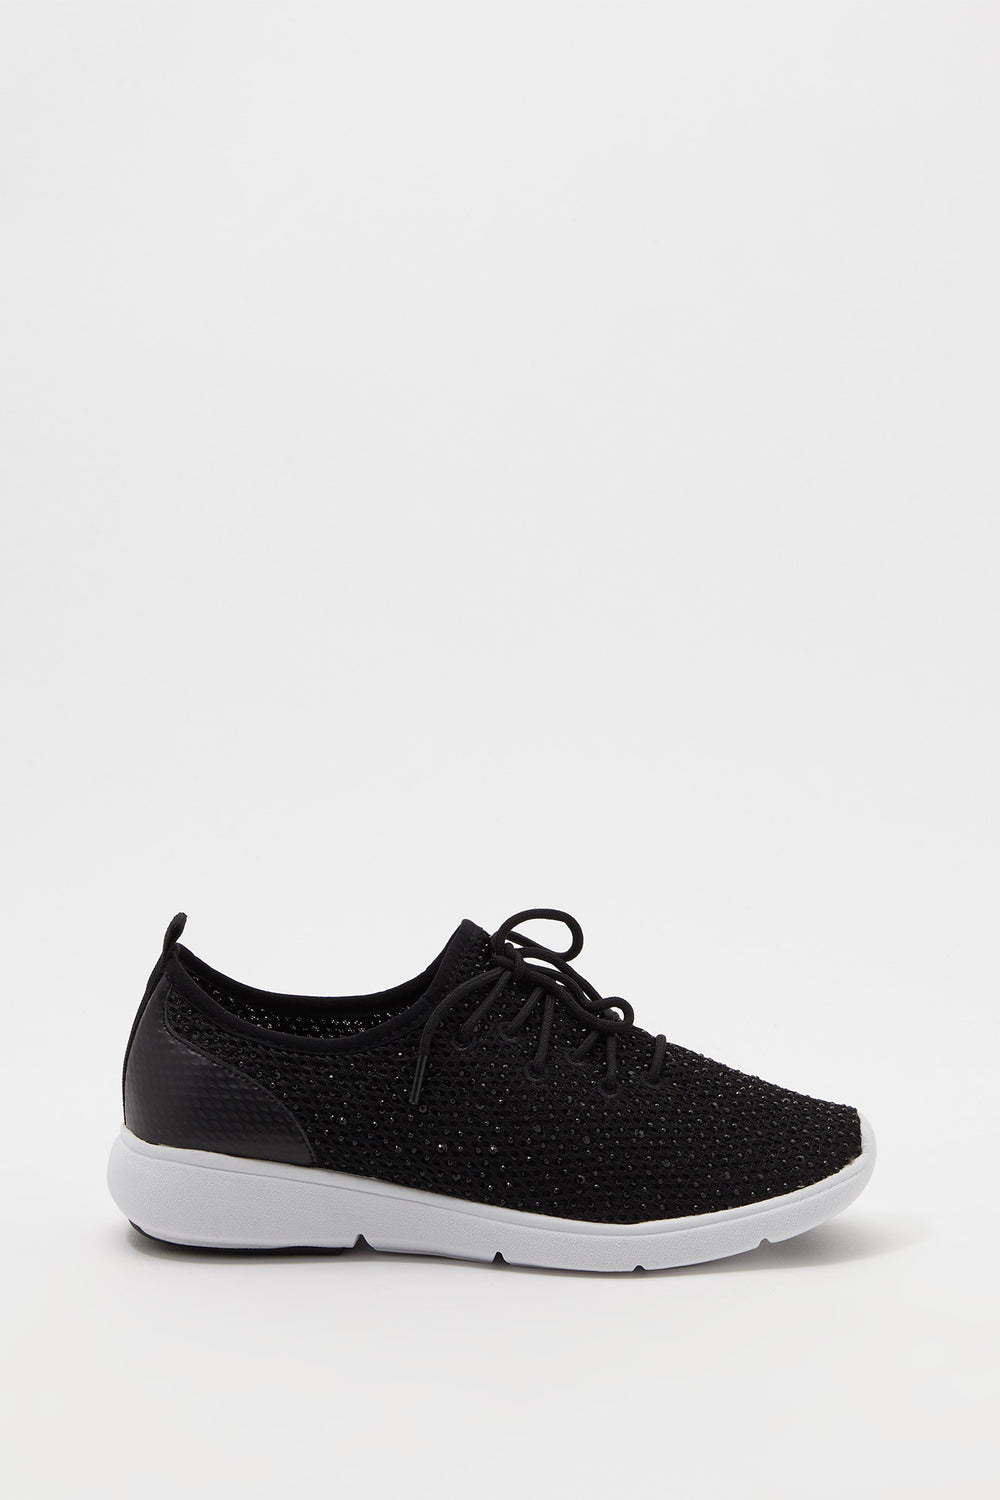 Sequin Lace-Up Sneaker Black